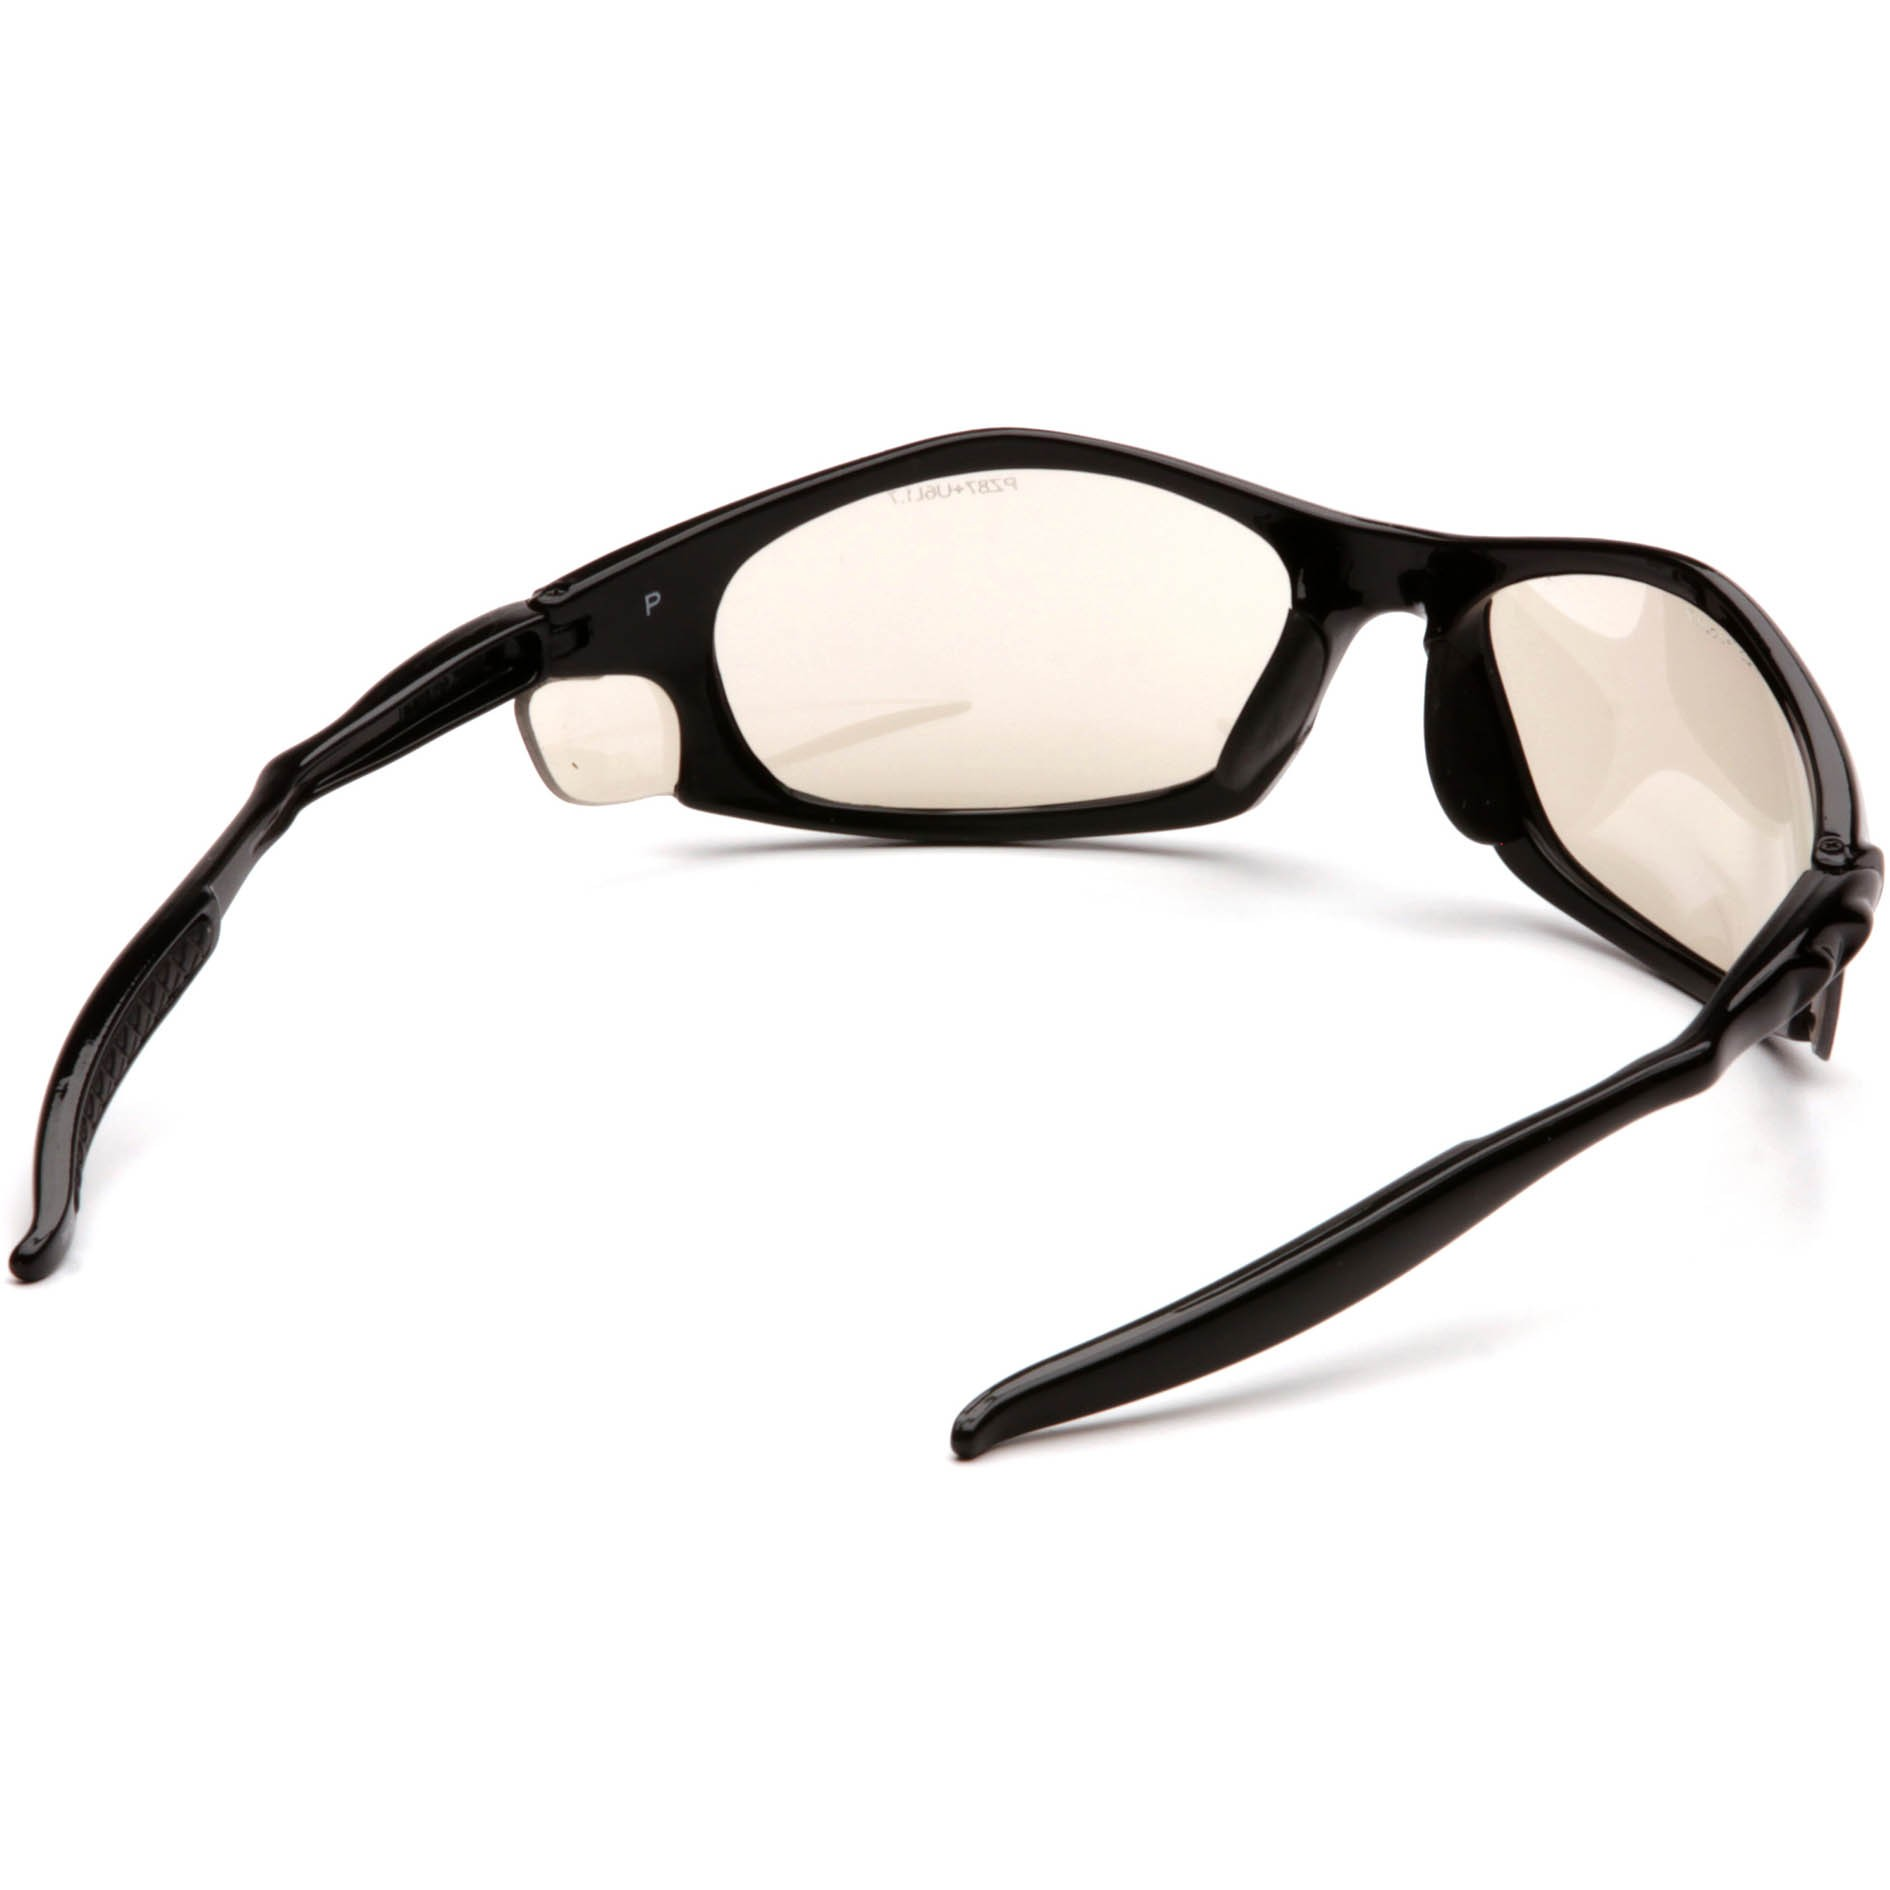 41d0b3e6d8c Pyramex Solara Safety Glasses - Black Frame - Indoor Outdoor Mirror Lens